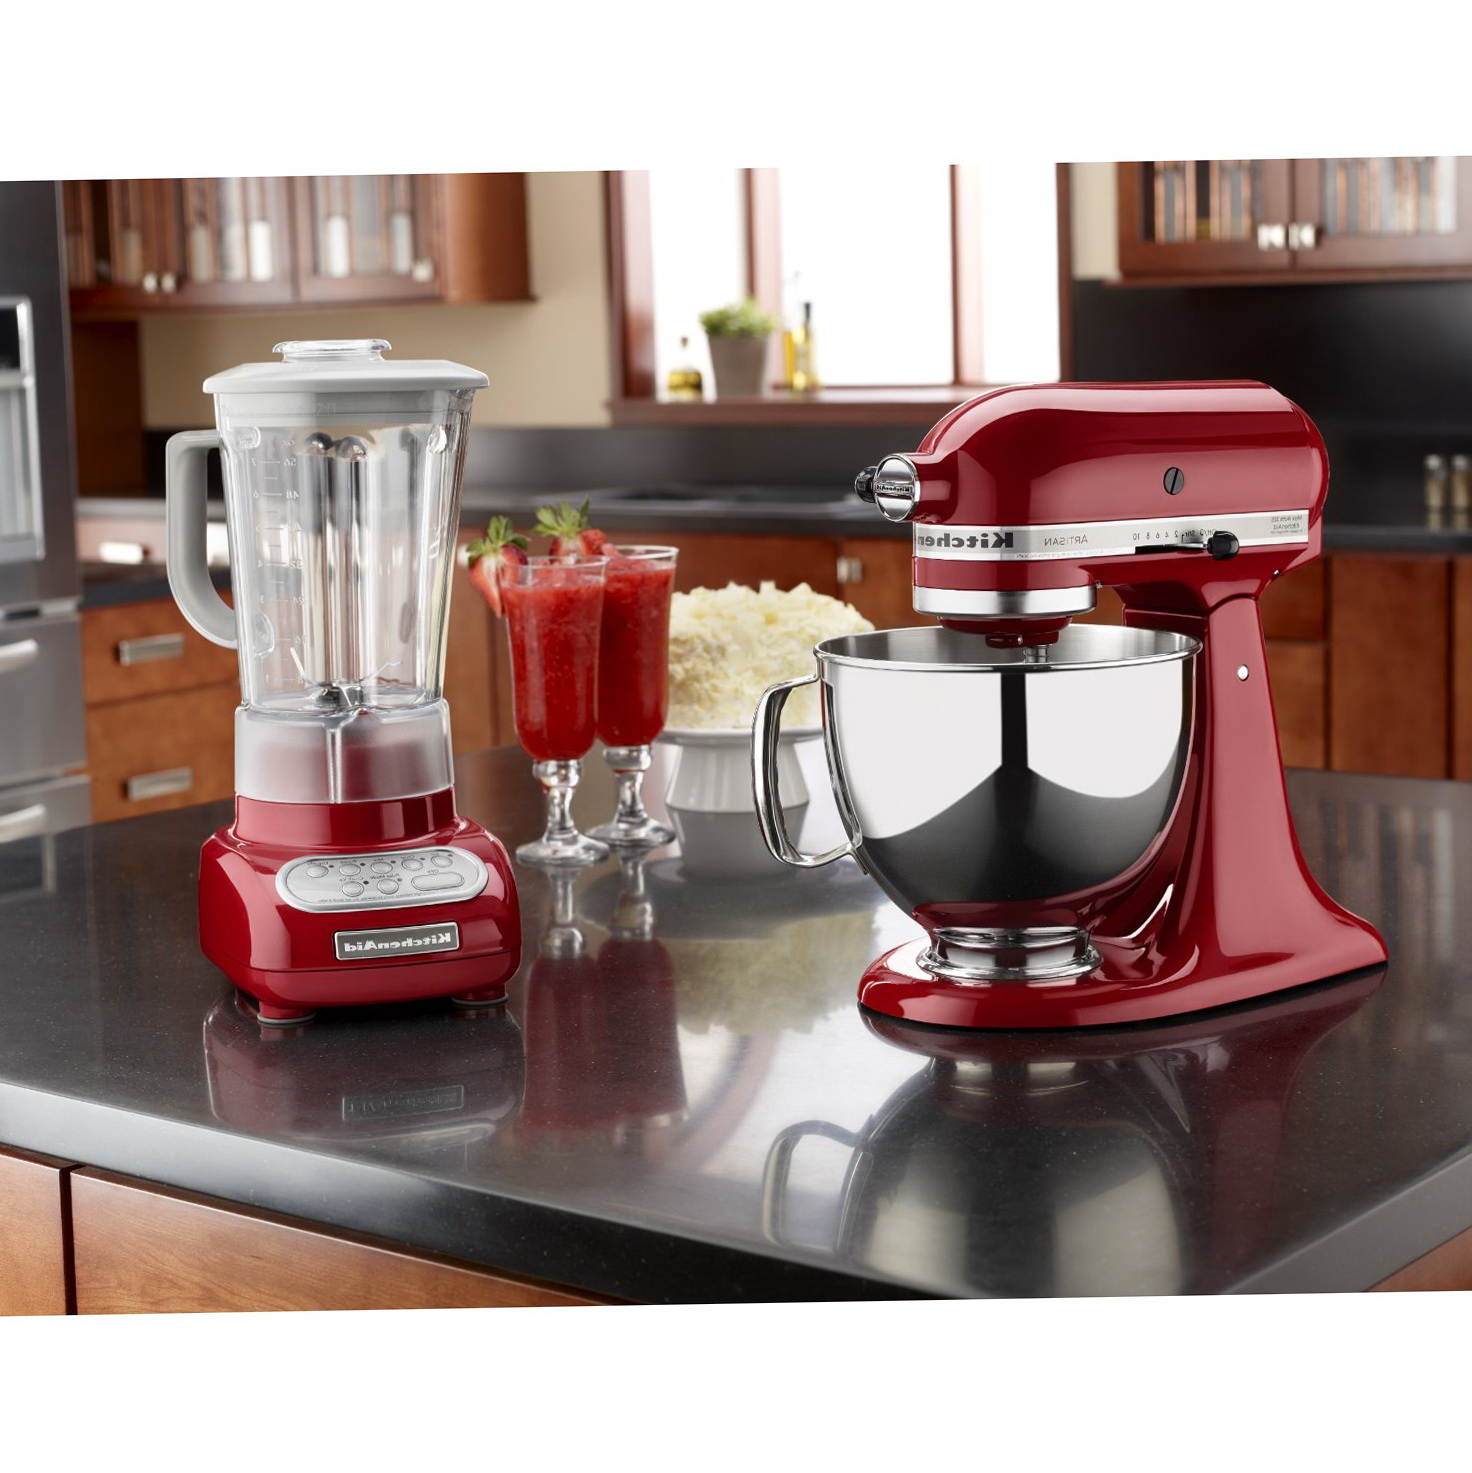 Kitchenaid Mixers Reviews